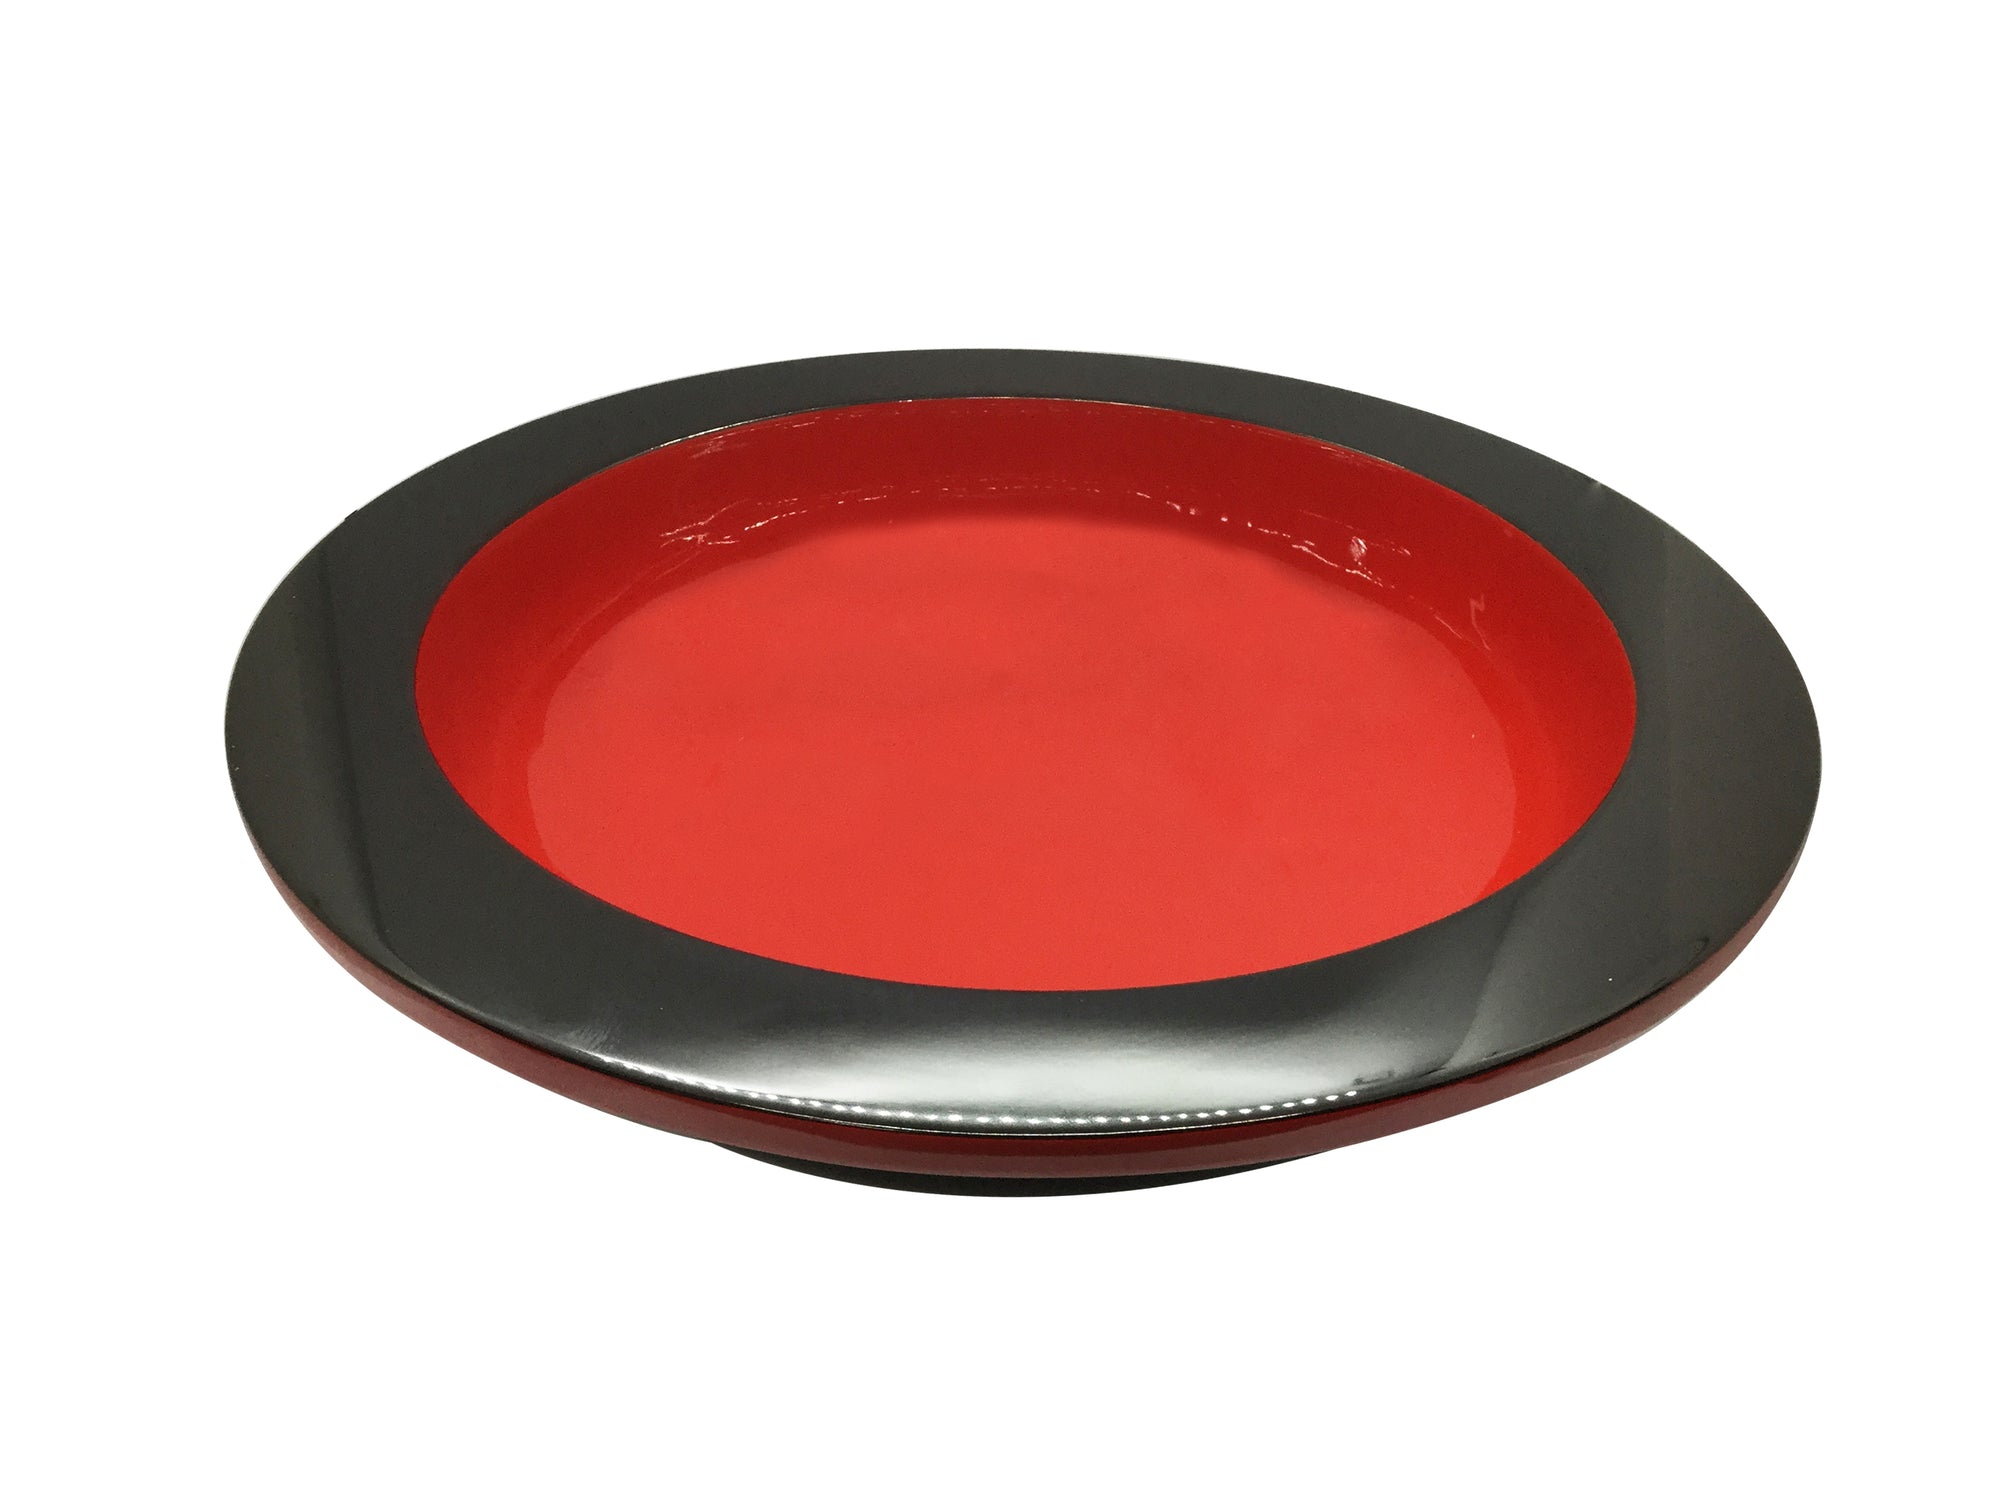 Renaissance Lacquered Bowl - Christmas Red and Black